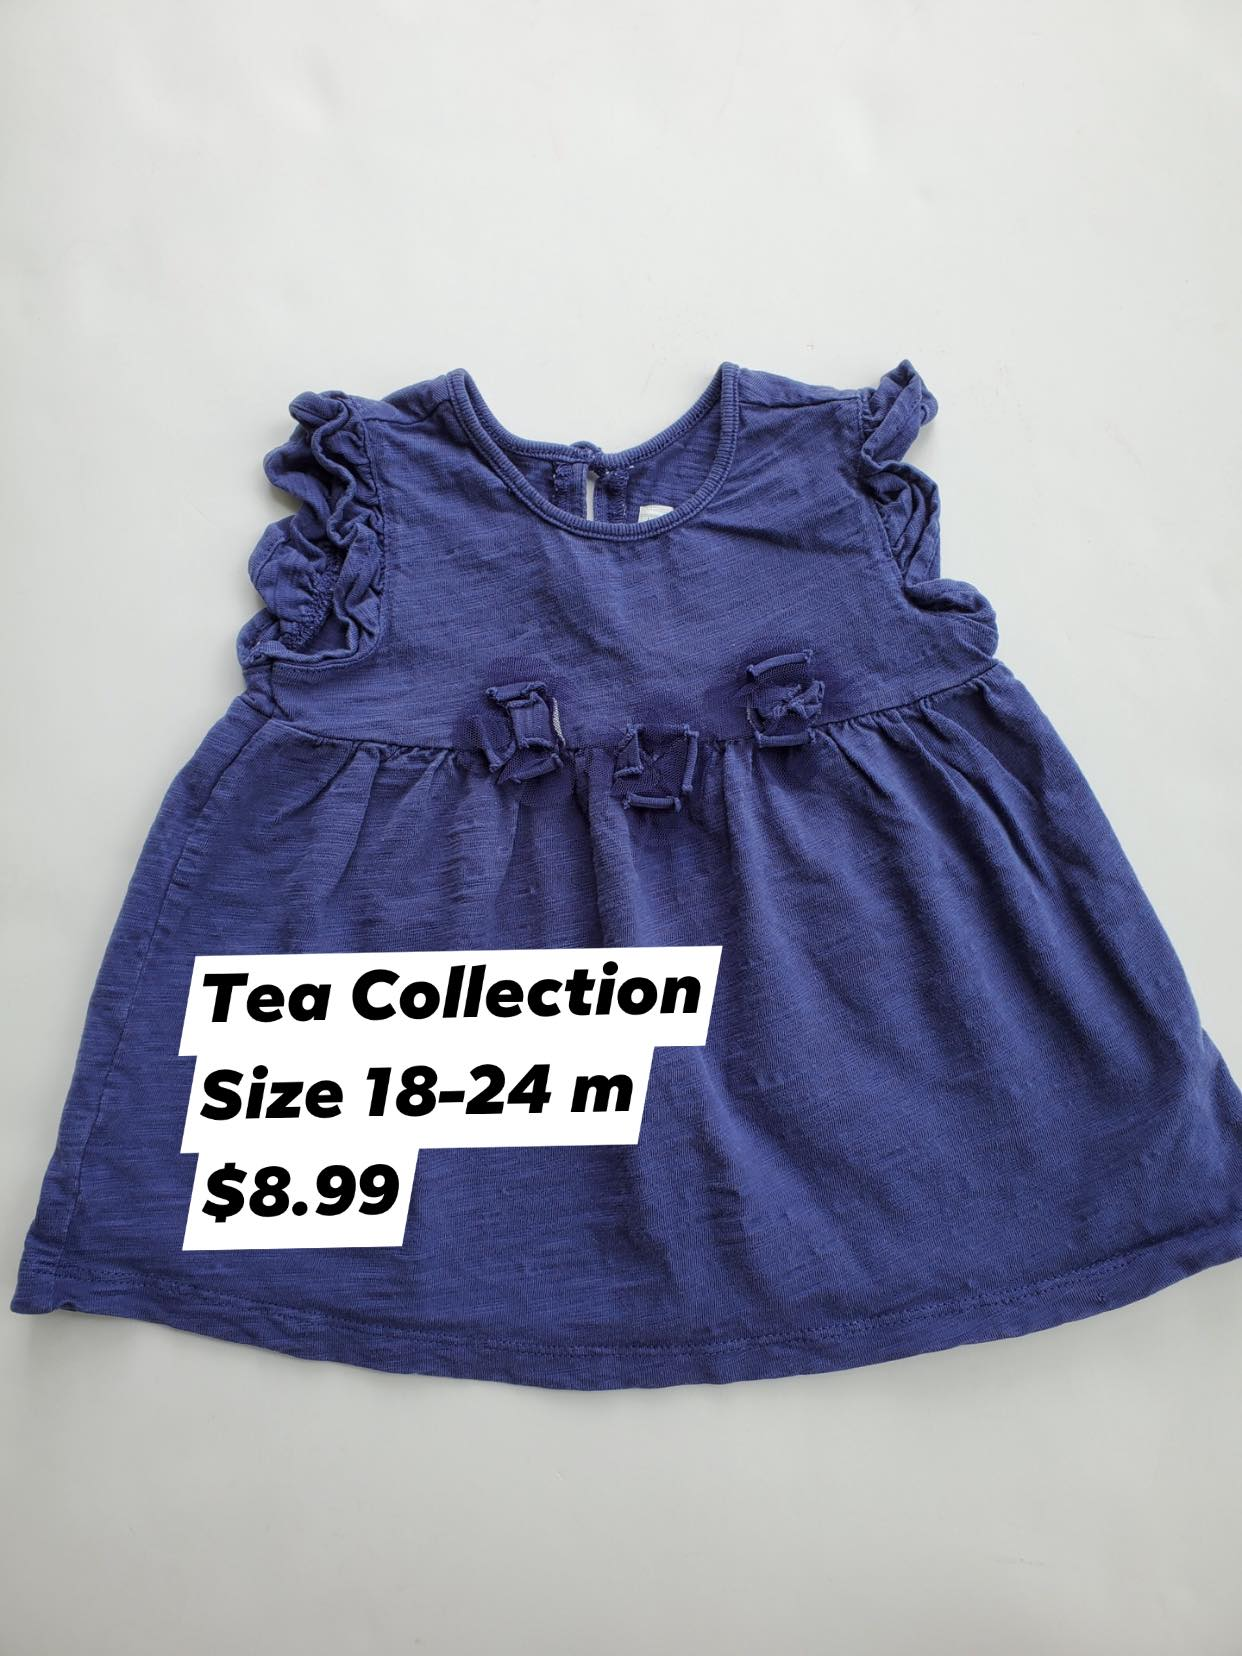 Resale 18-24 m Tea Collection Indigo Shirt